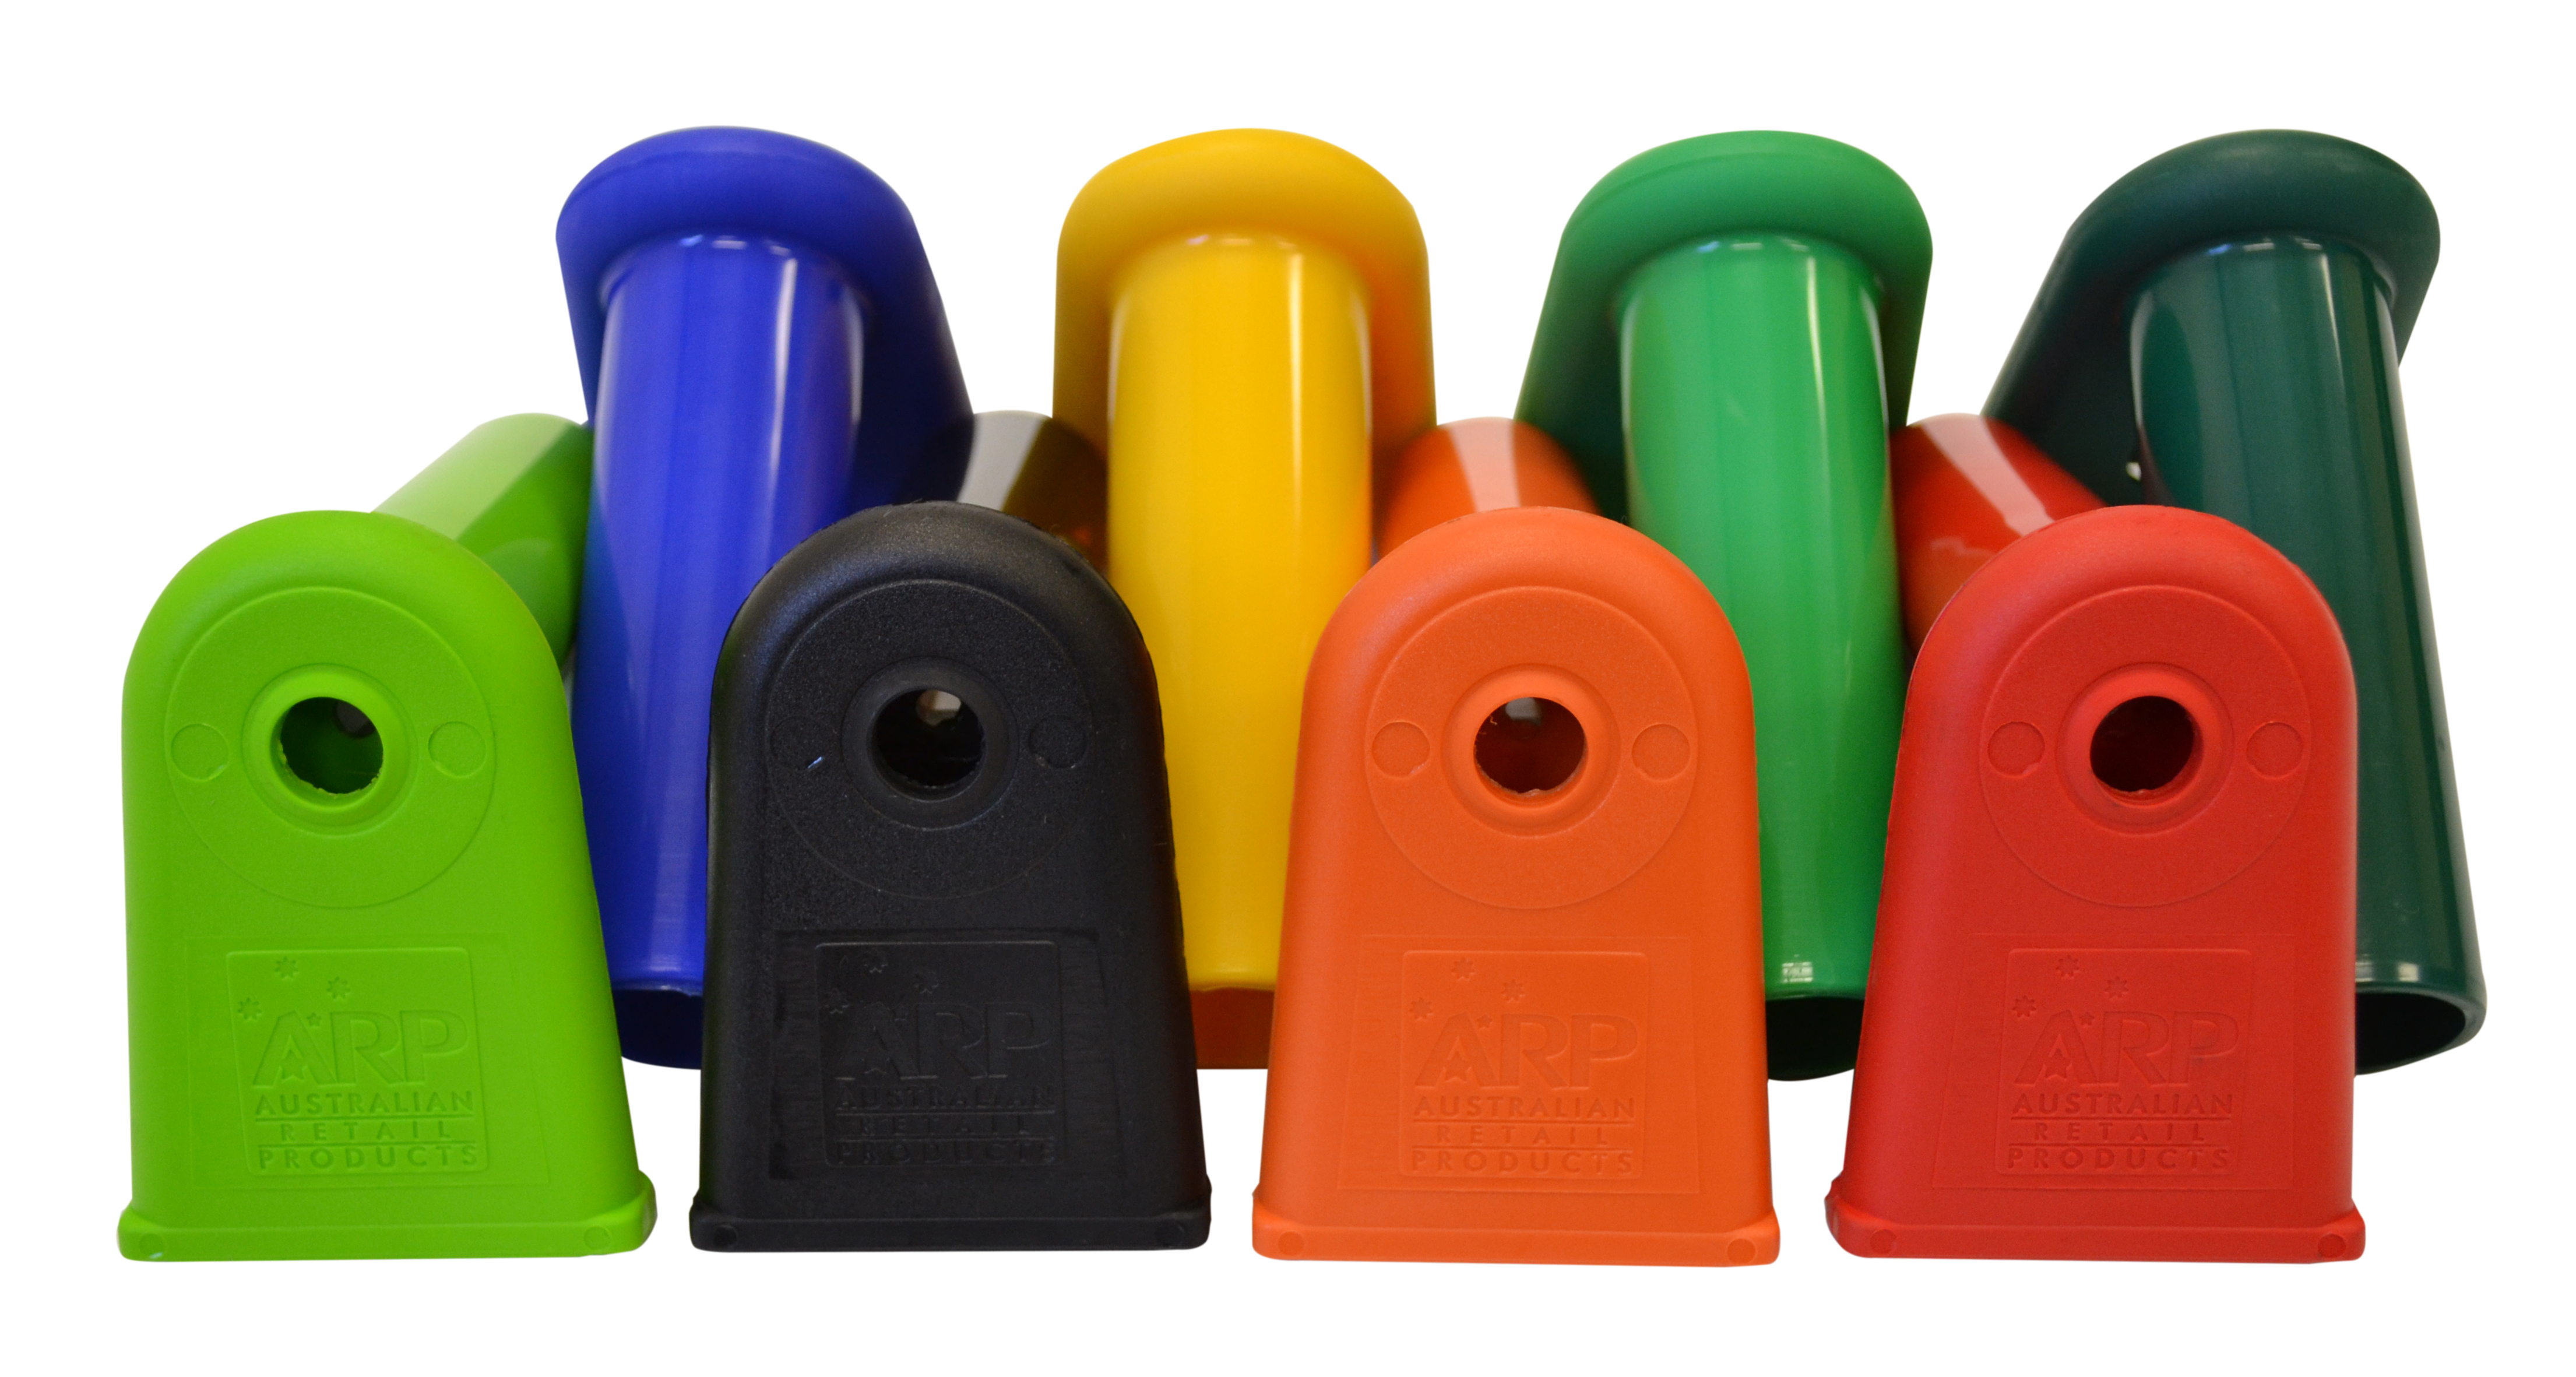 View our range of shopping trolley security handle end caps, made in Australia from UV protected platics. Available in a variety of colours & suits most supermarket shopping trolleys. Check it out now, ships Autralia wide!